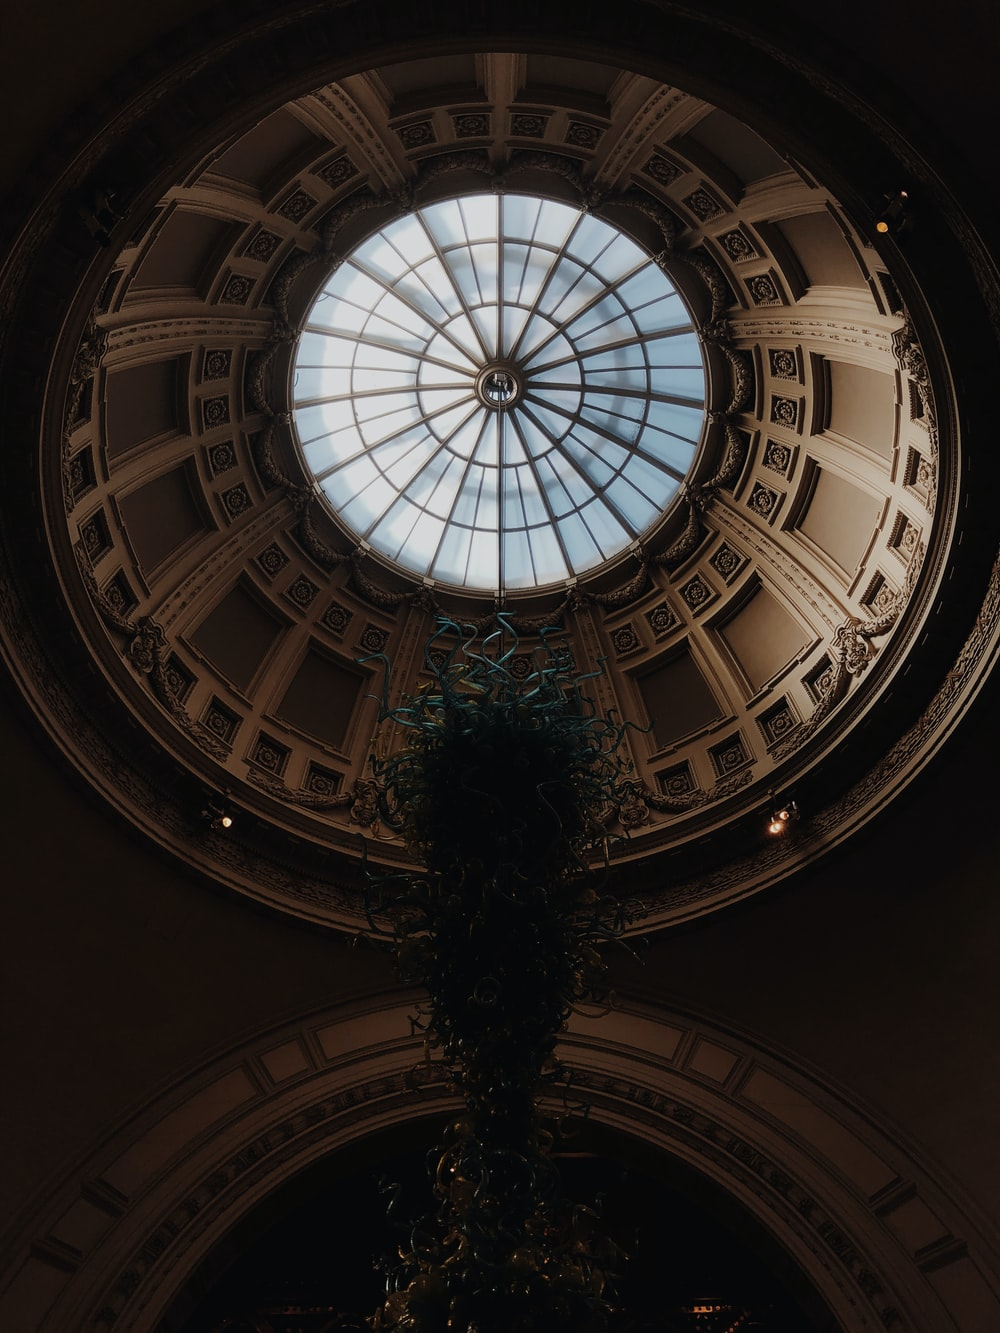 low-angle photography of ceiling of dome building